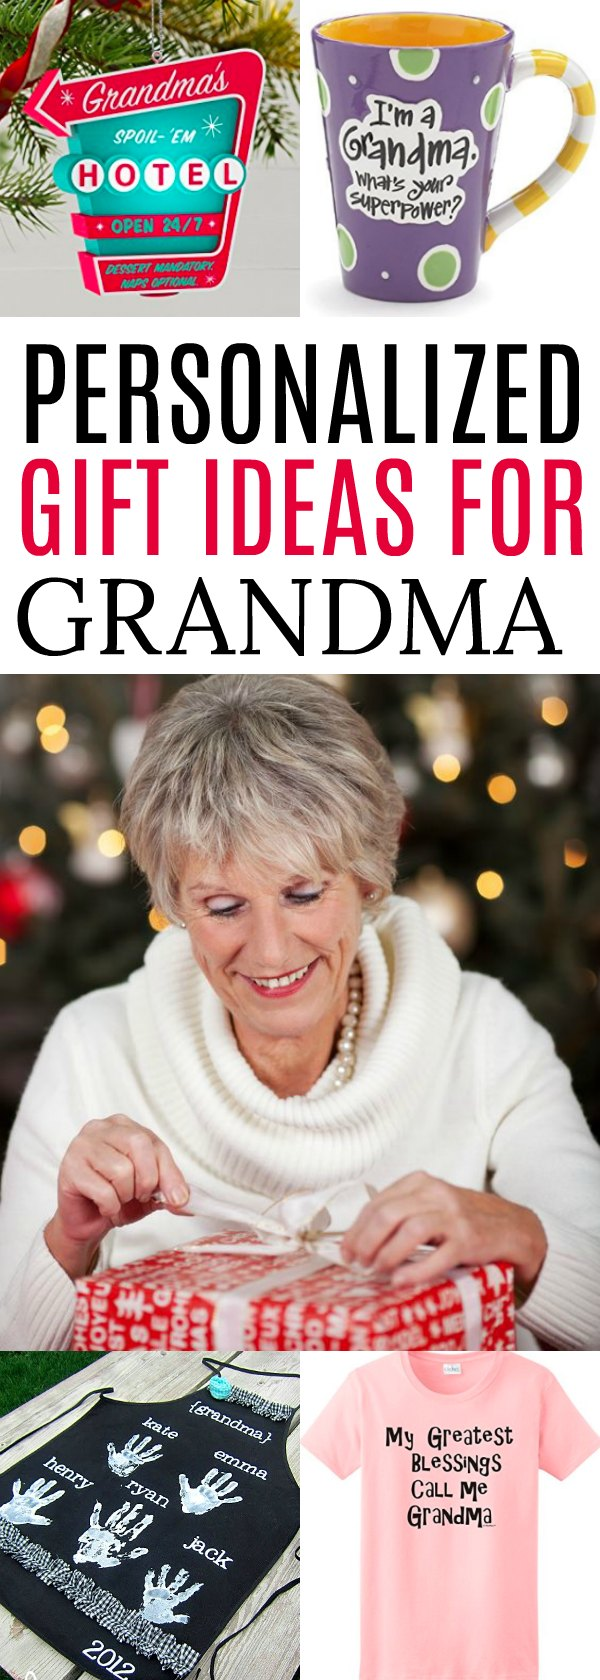 Find the perfect gifts for Grandma! We have 25 gift ideas for Grandma. 25 personalized gifts for Grandma she will love. Find presents for Grandma!